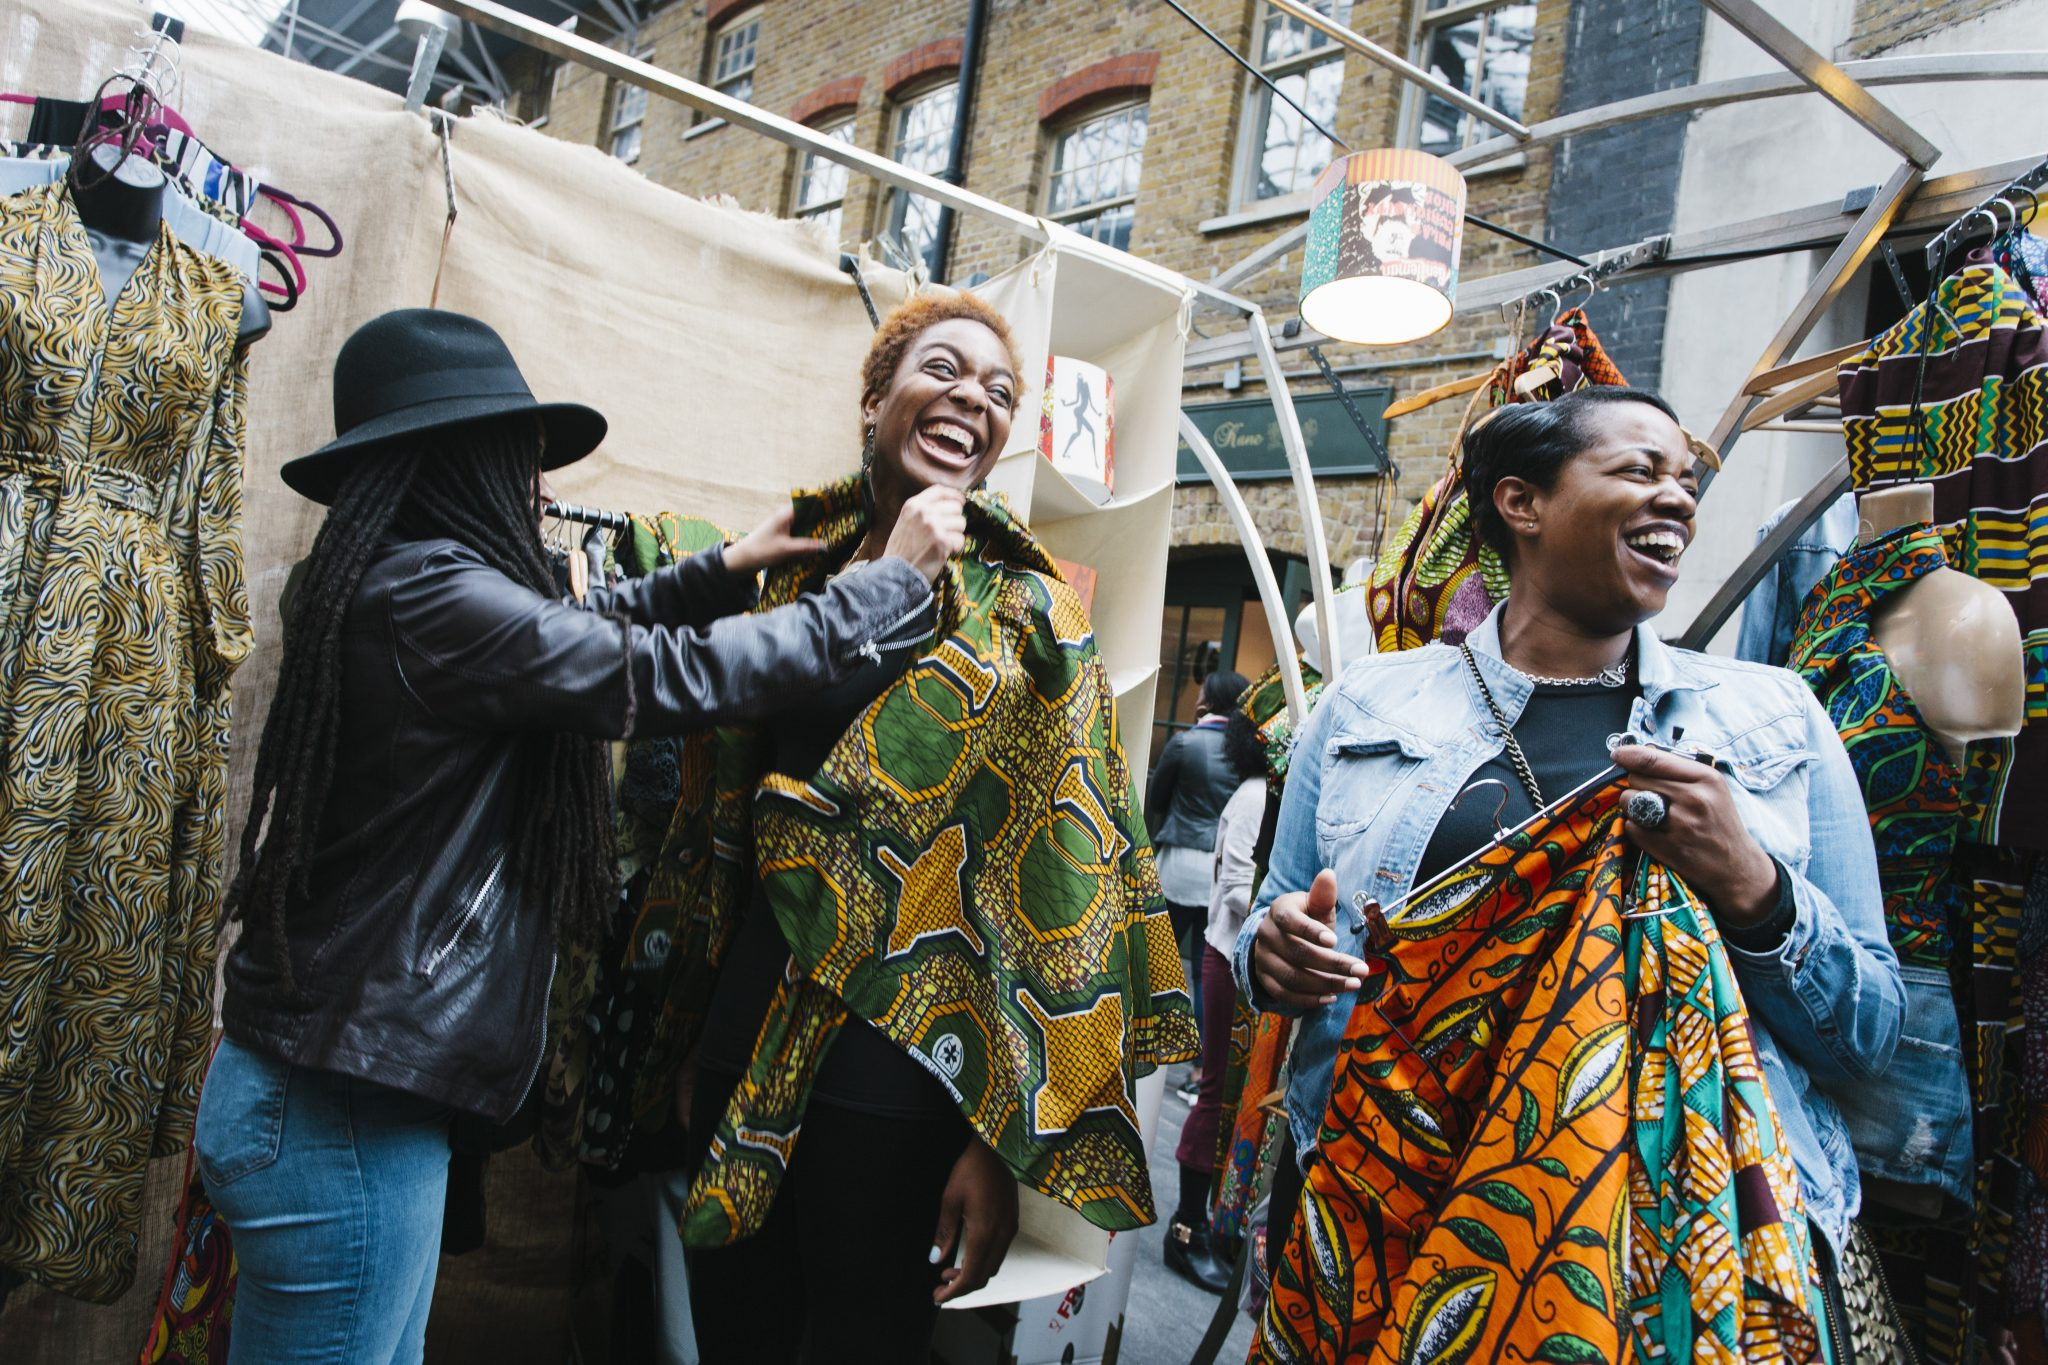 Shop, taste, experience: Africa at Spitalfields is 5 this May